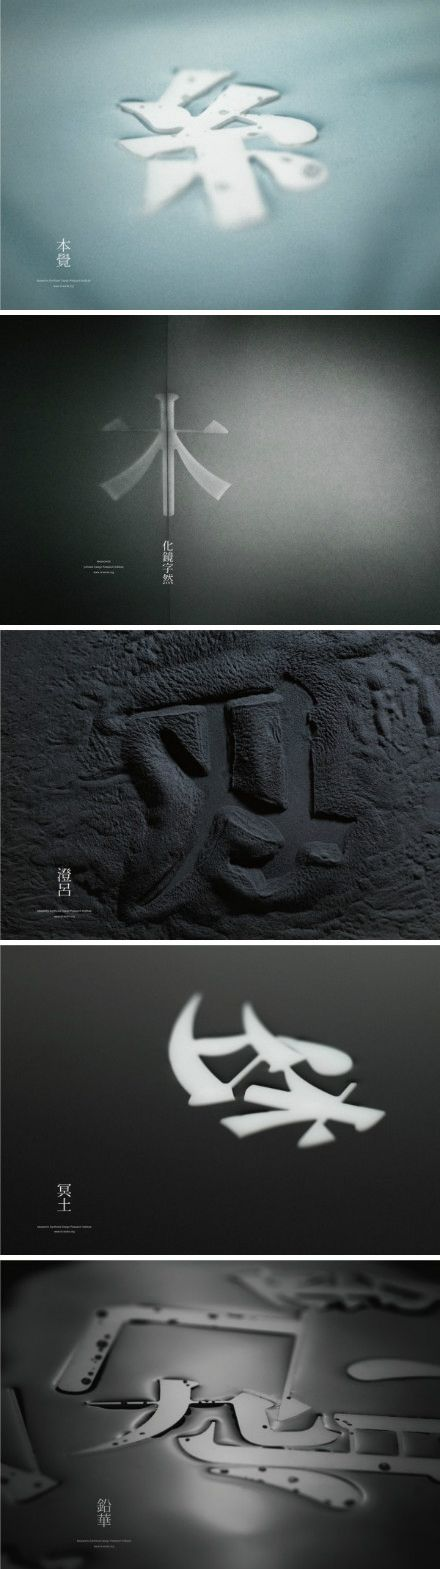 Chinese Typography/ use of different materials and textures colours and styles